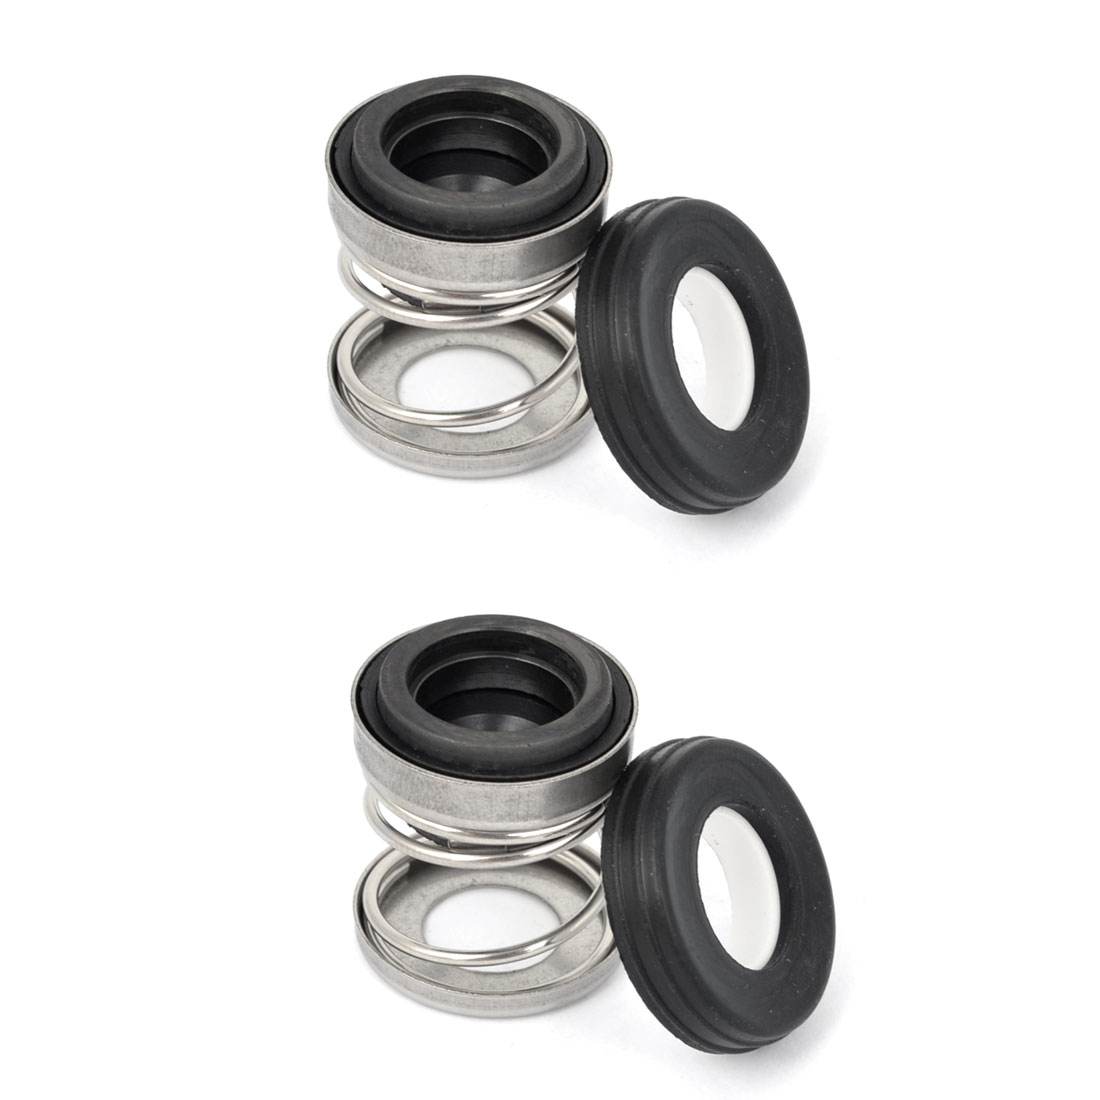 2 Pcs 11mm Internal Diameter Industrial Mechanical Seal for Water Pump